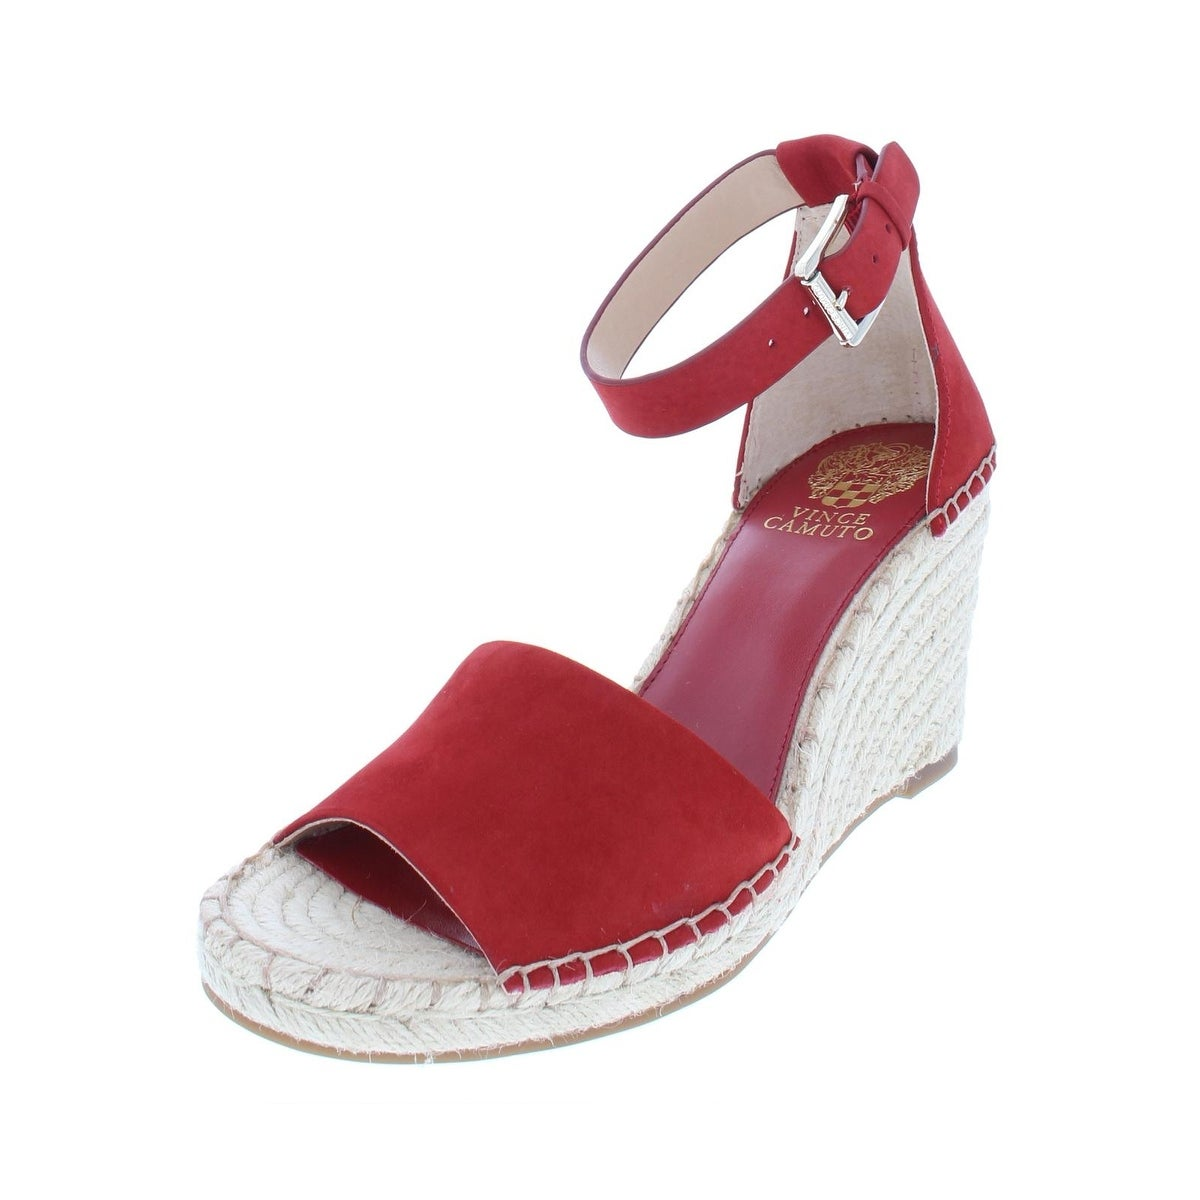 8b6d2ccc277d Red Vince Camuto Shoes